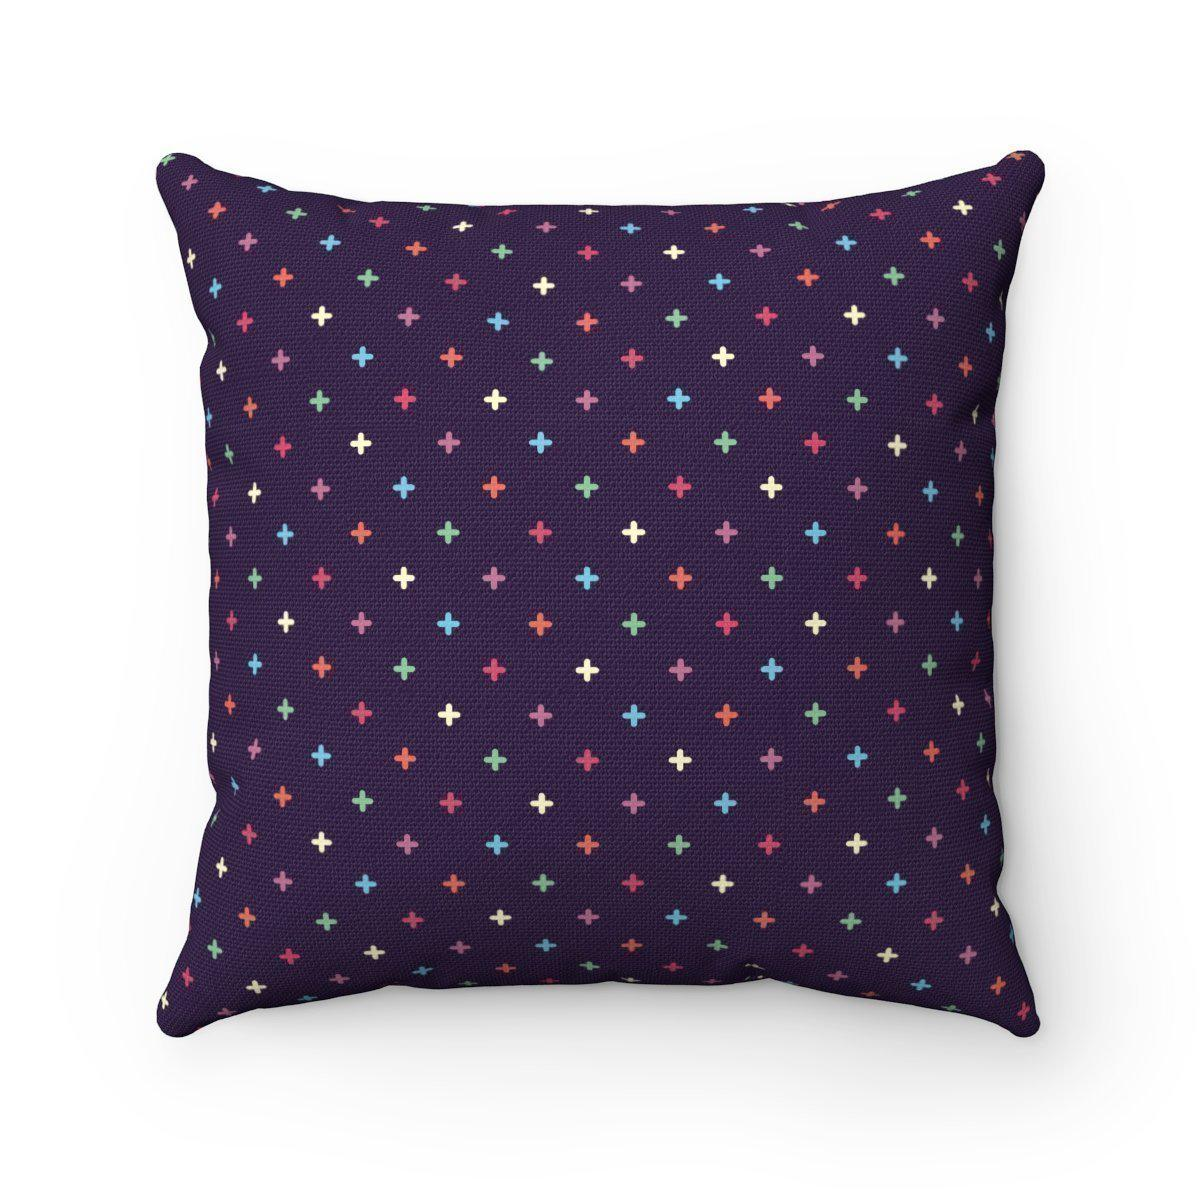 Double sided modern decorative cushion cover-Home Decor - Decorative Accents - Pillows & Throws - Decorative Pillows-Maison d'Elite-16x16-Très Elite